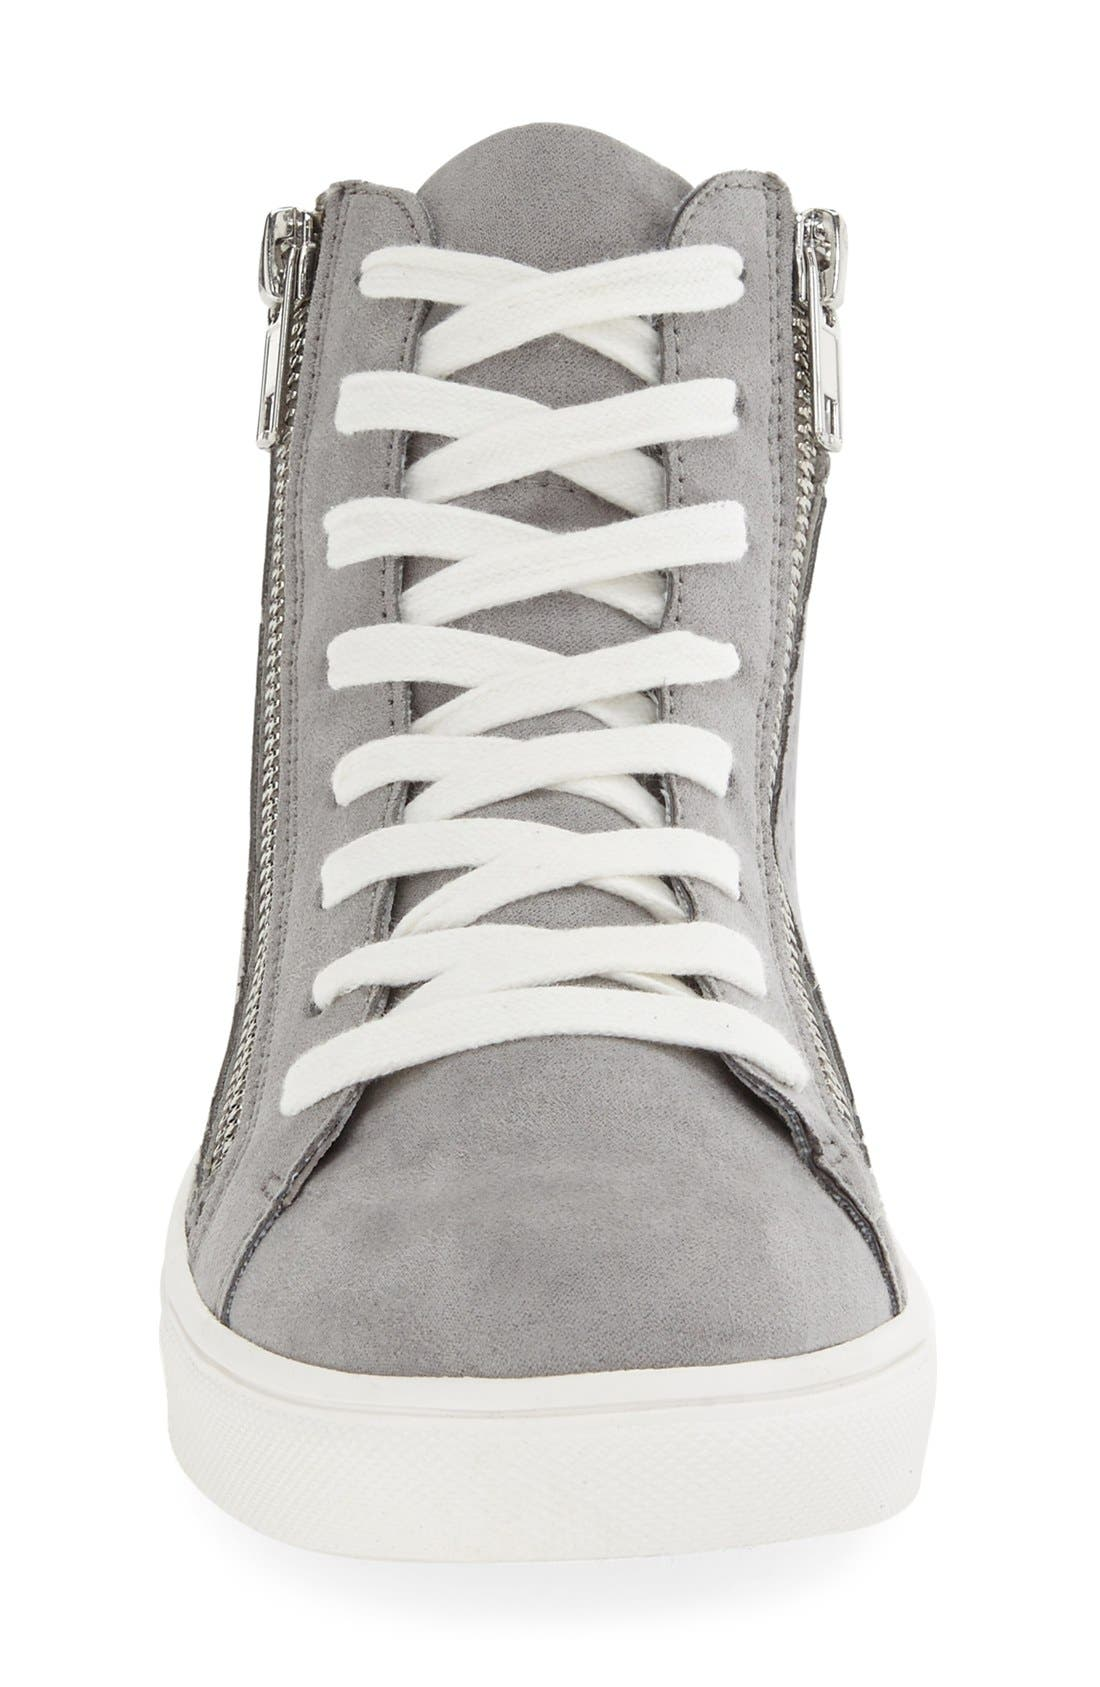 Alternate Image 3  - Steve Madden 'Elyka' Laser Cut High Top Sneaker (Women)